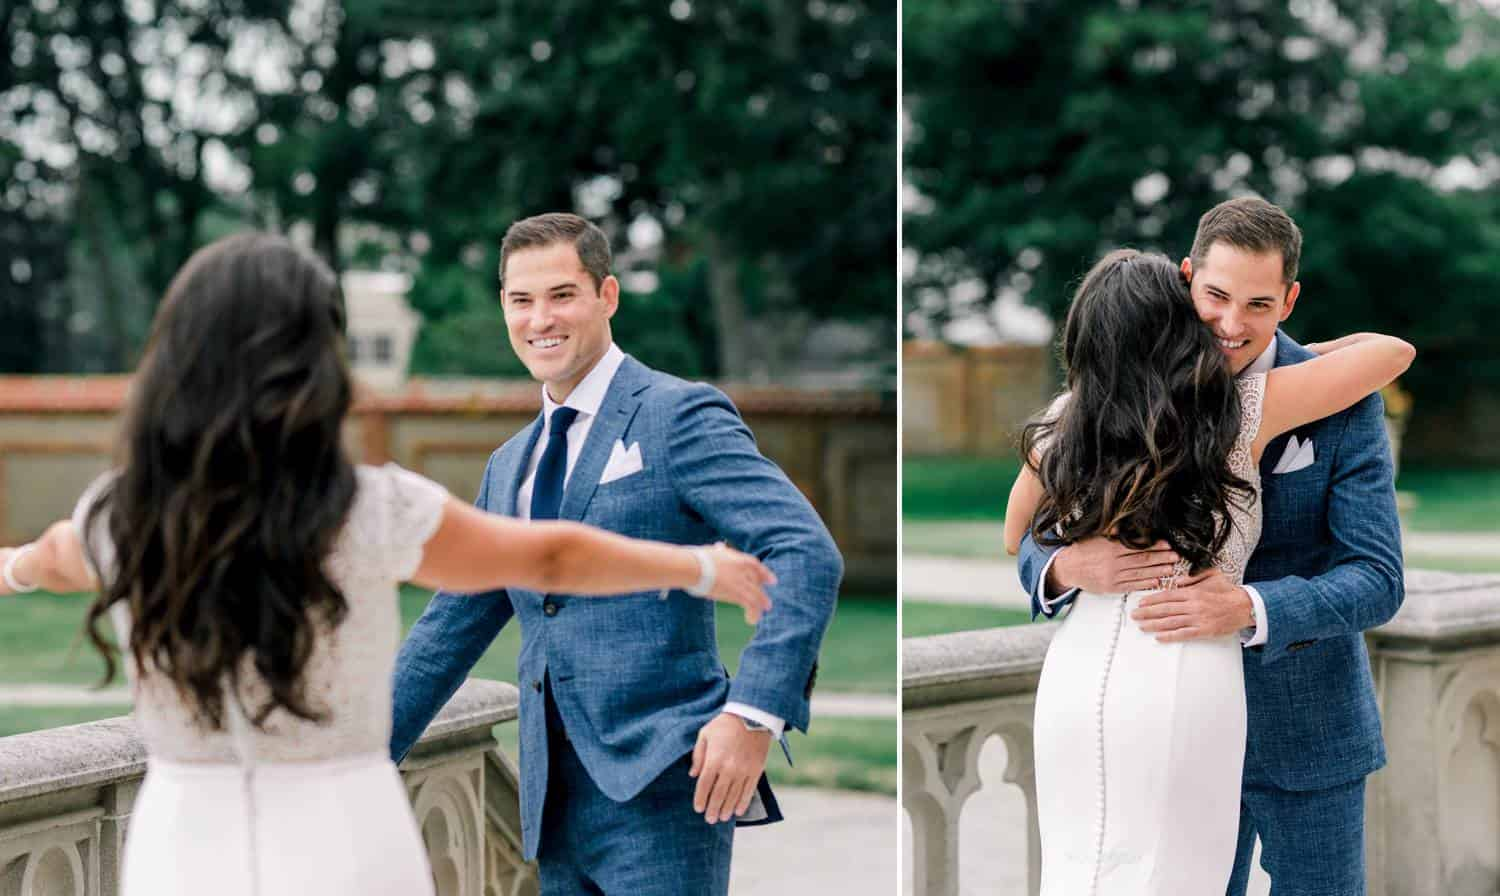 In two side-by-side photos, a bride walks up to a groom who is waiting for her outside, and they embrace.